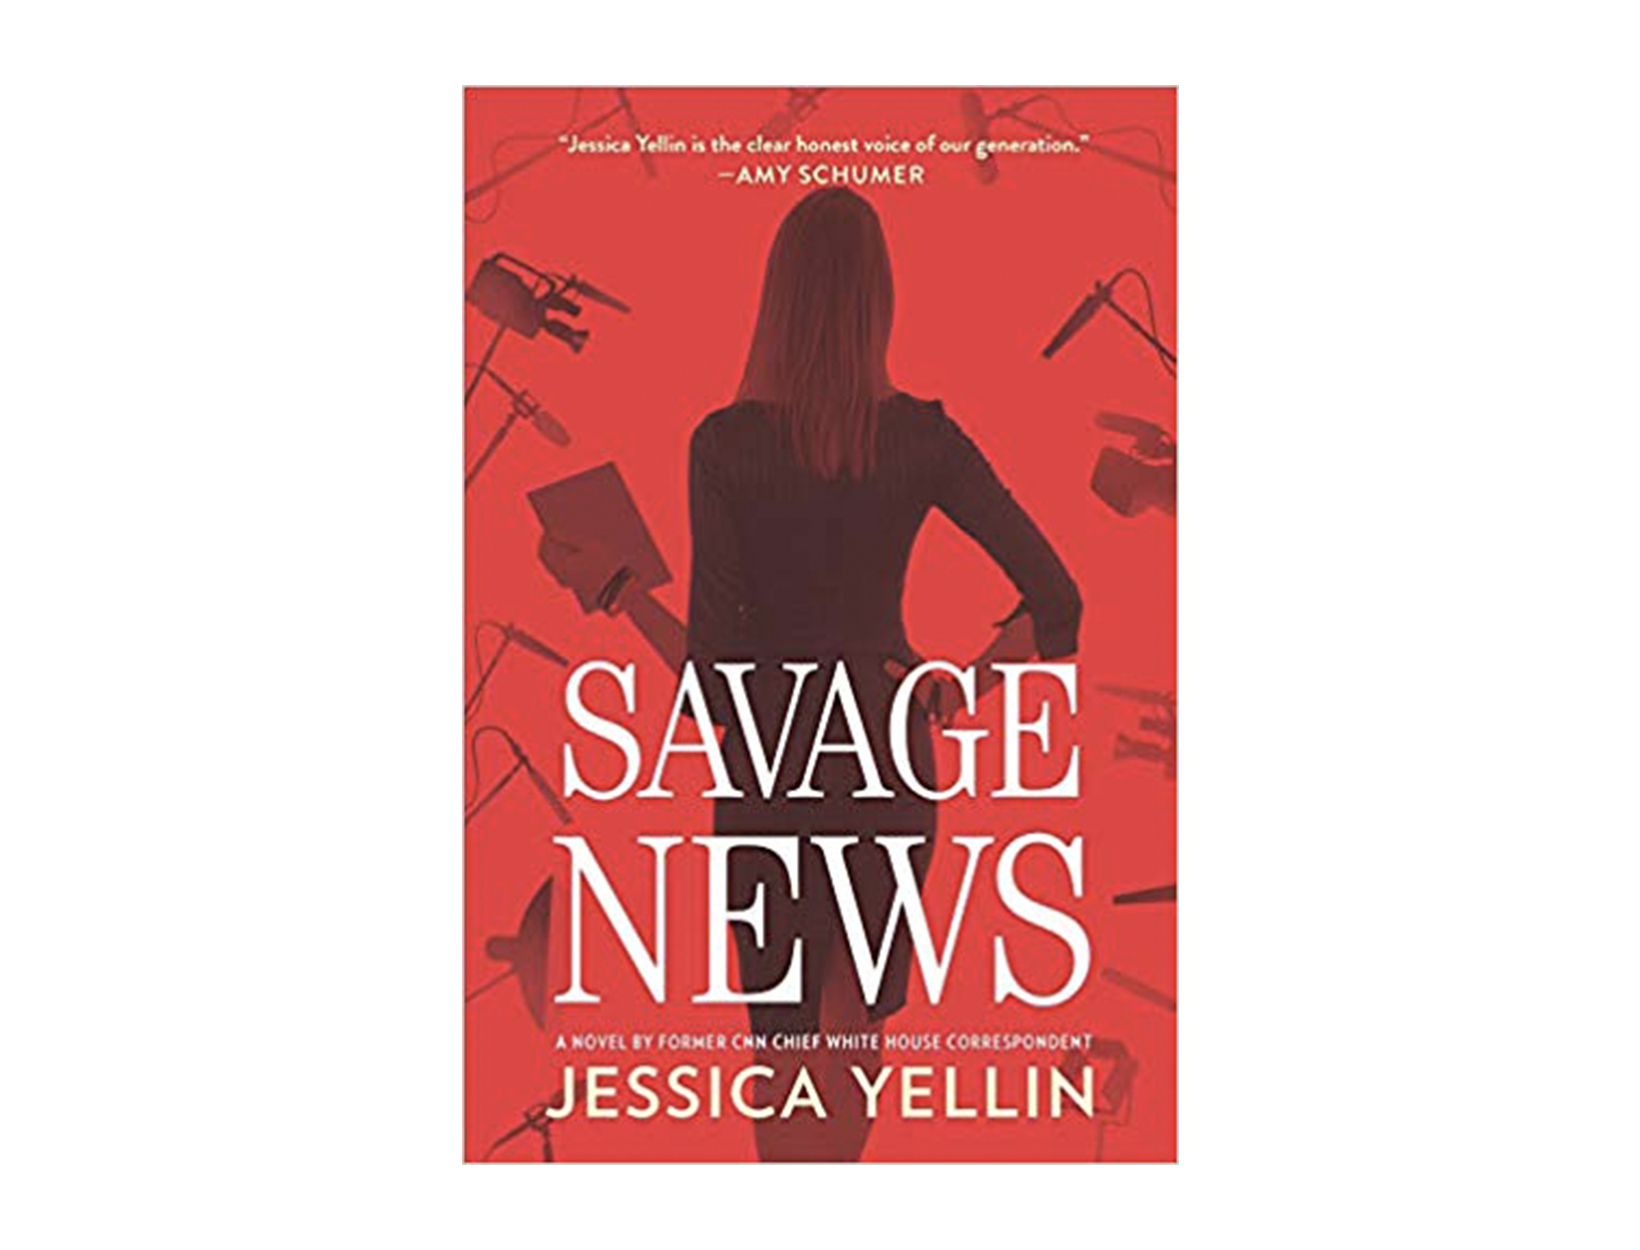 <em>Savage News</em> by Jessica Yellin